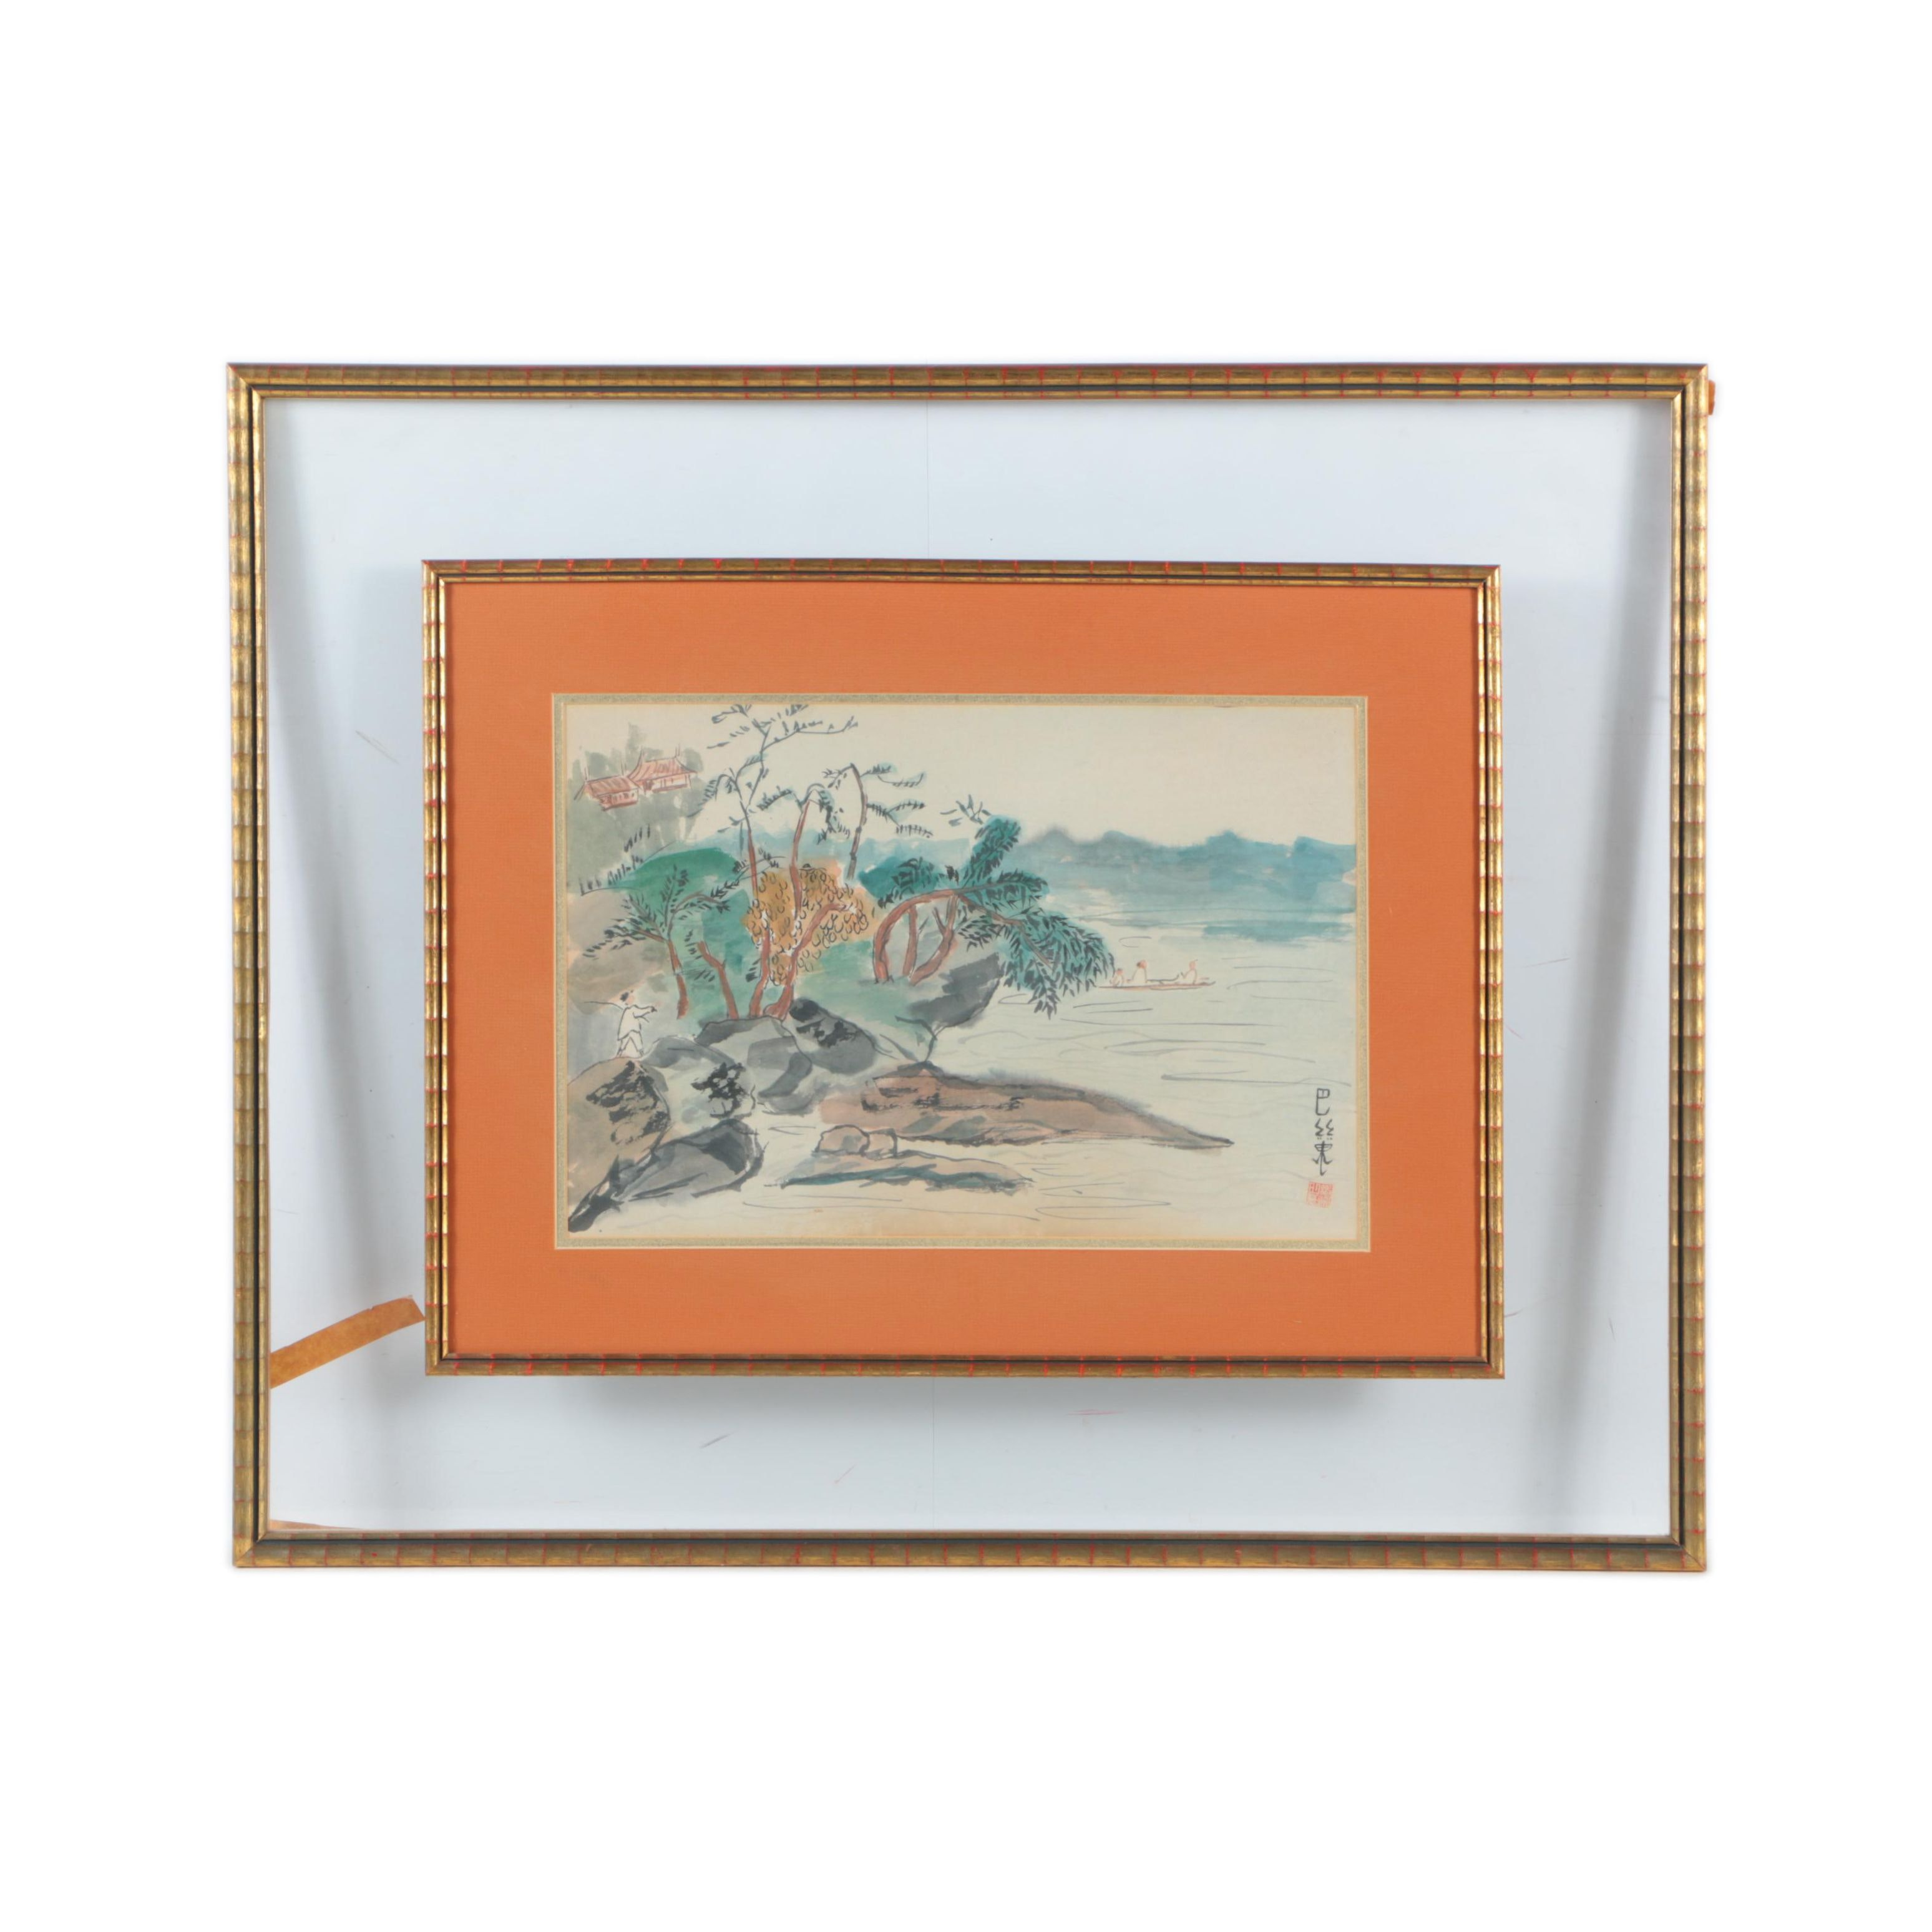 East Asian-Style Watercolor Painting of a Landscape on Paper